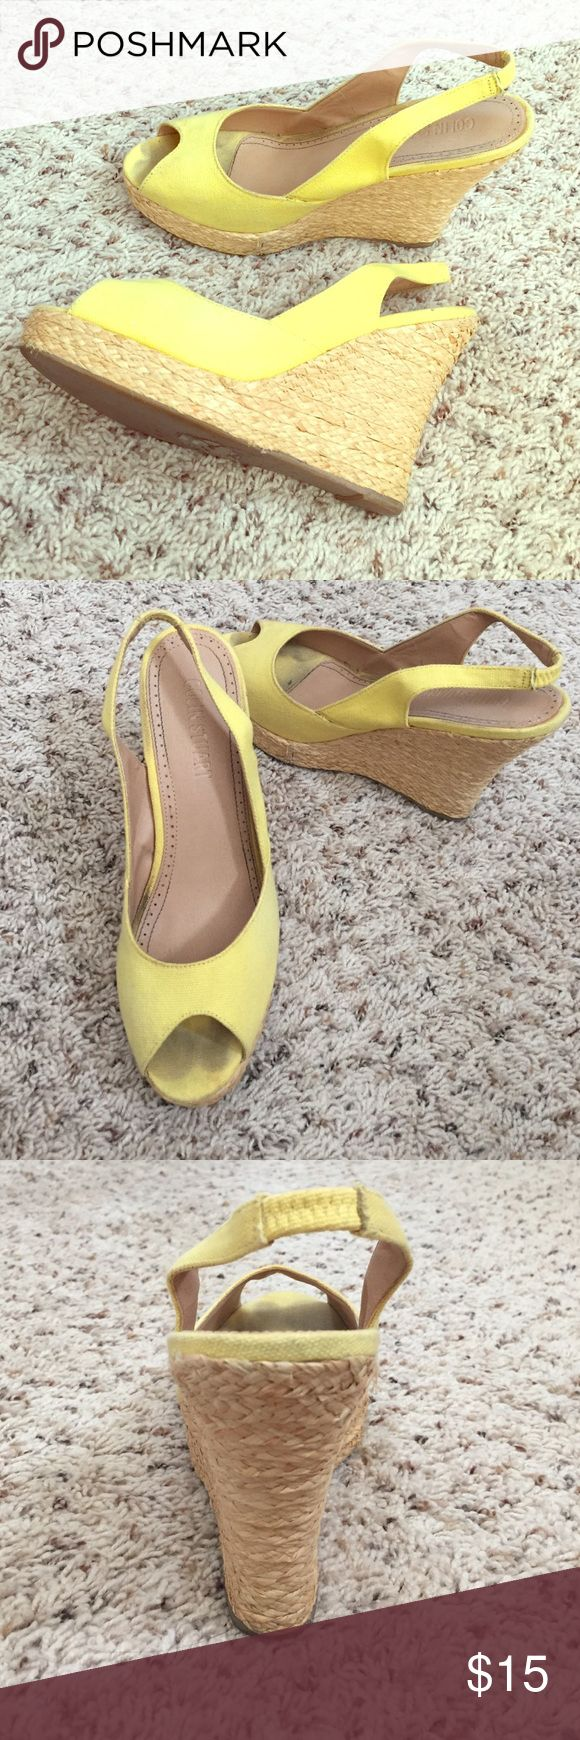 Colin Stuart yellow espadrilles size 9 Colin Stuart yellow wedge espadrilles from Victoria secret. I believe they are a size 9. Some signs of wear but only worn a hand full of times. Still lots of love left in these. From a smoke free home. Colin Stuart Shoes Espadrilles